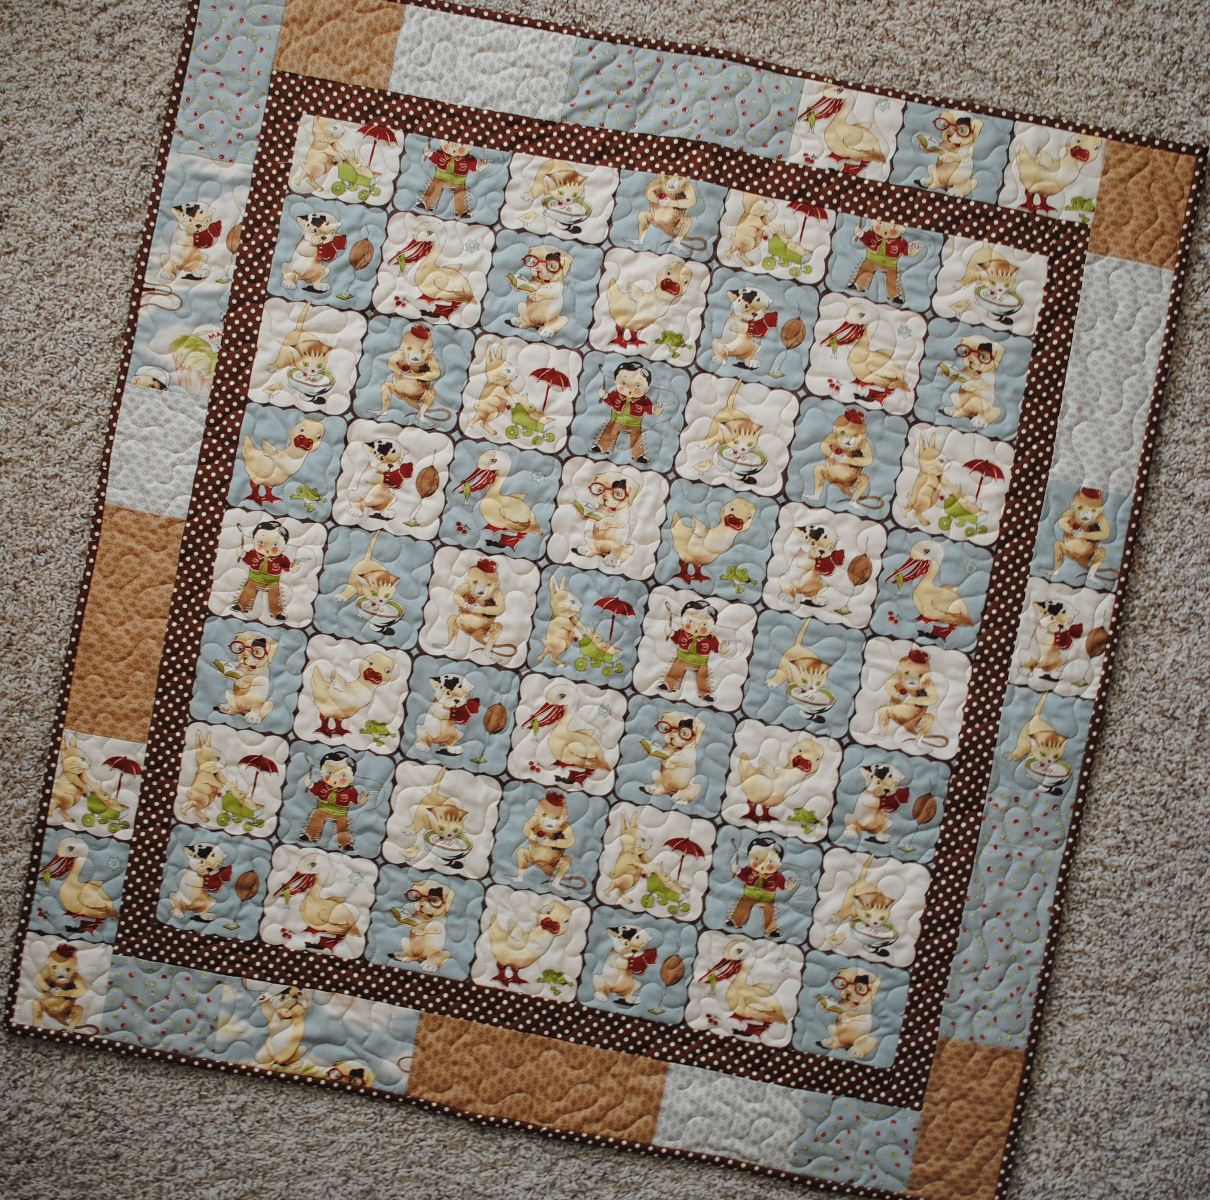 Ideas For Quilting Borders : {Sisters and Quilters}: More fun sewing ideas and more fabric bundles!